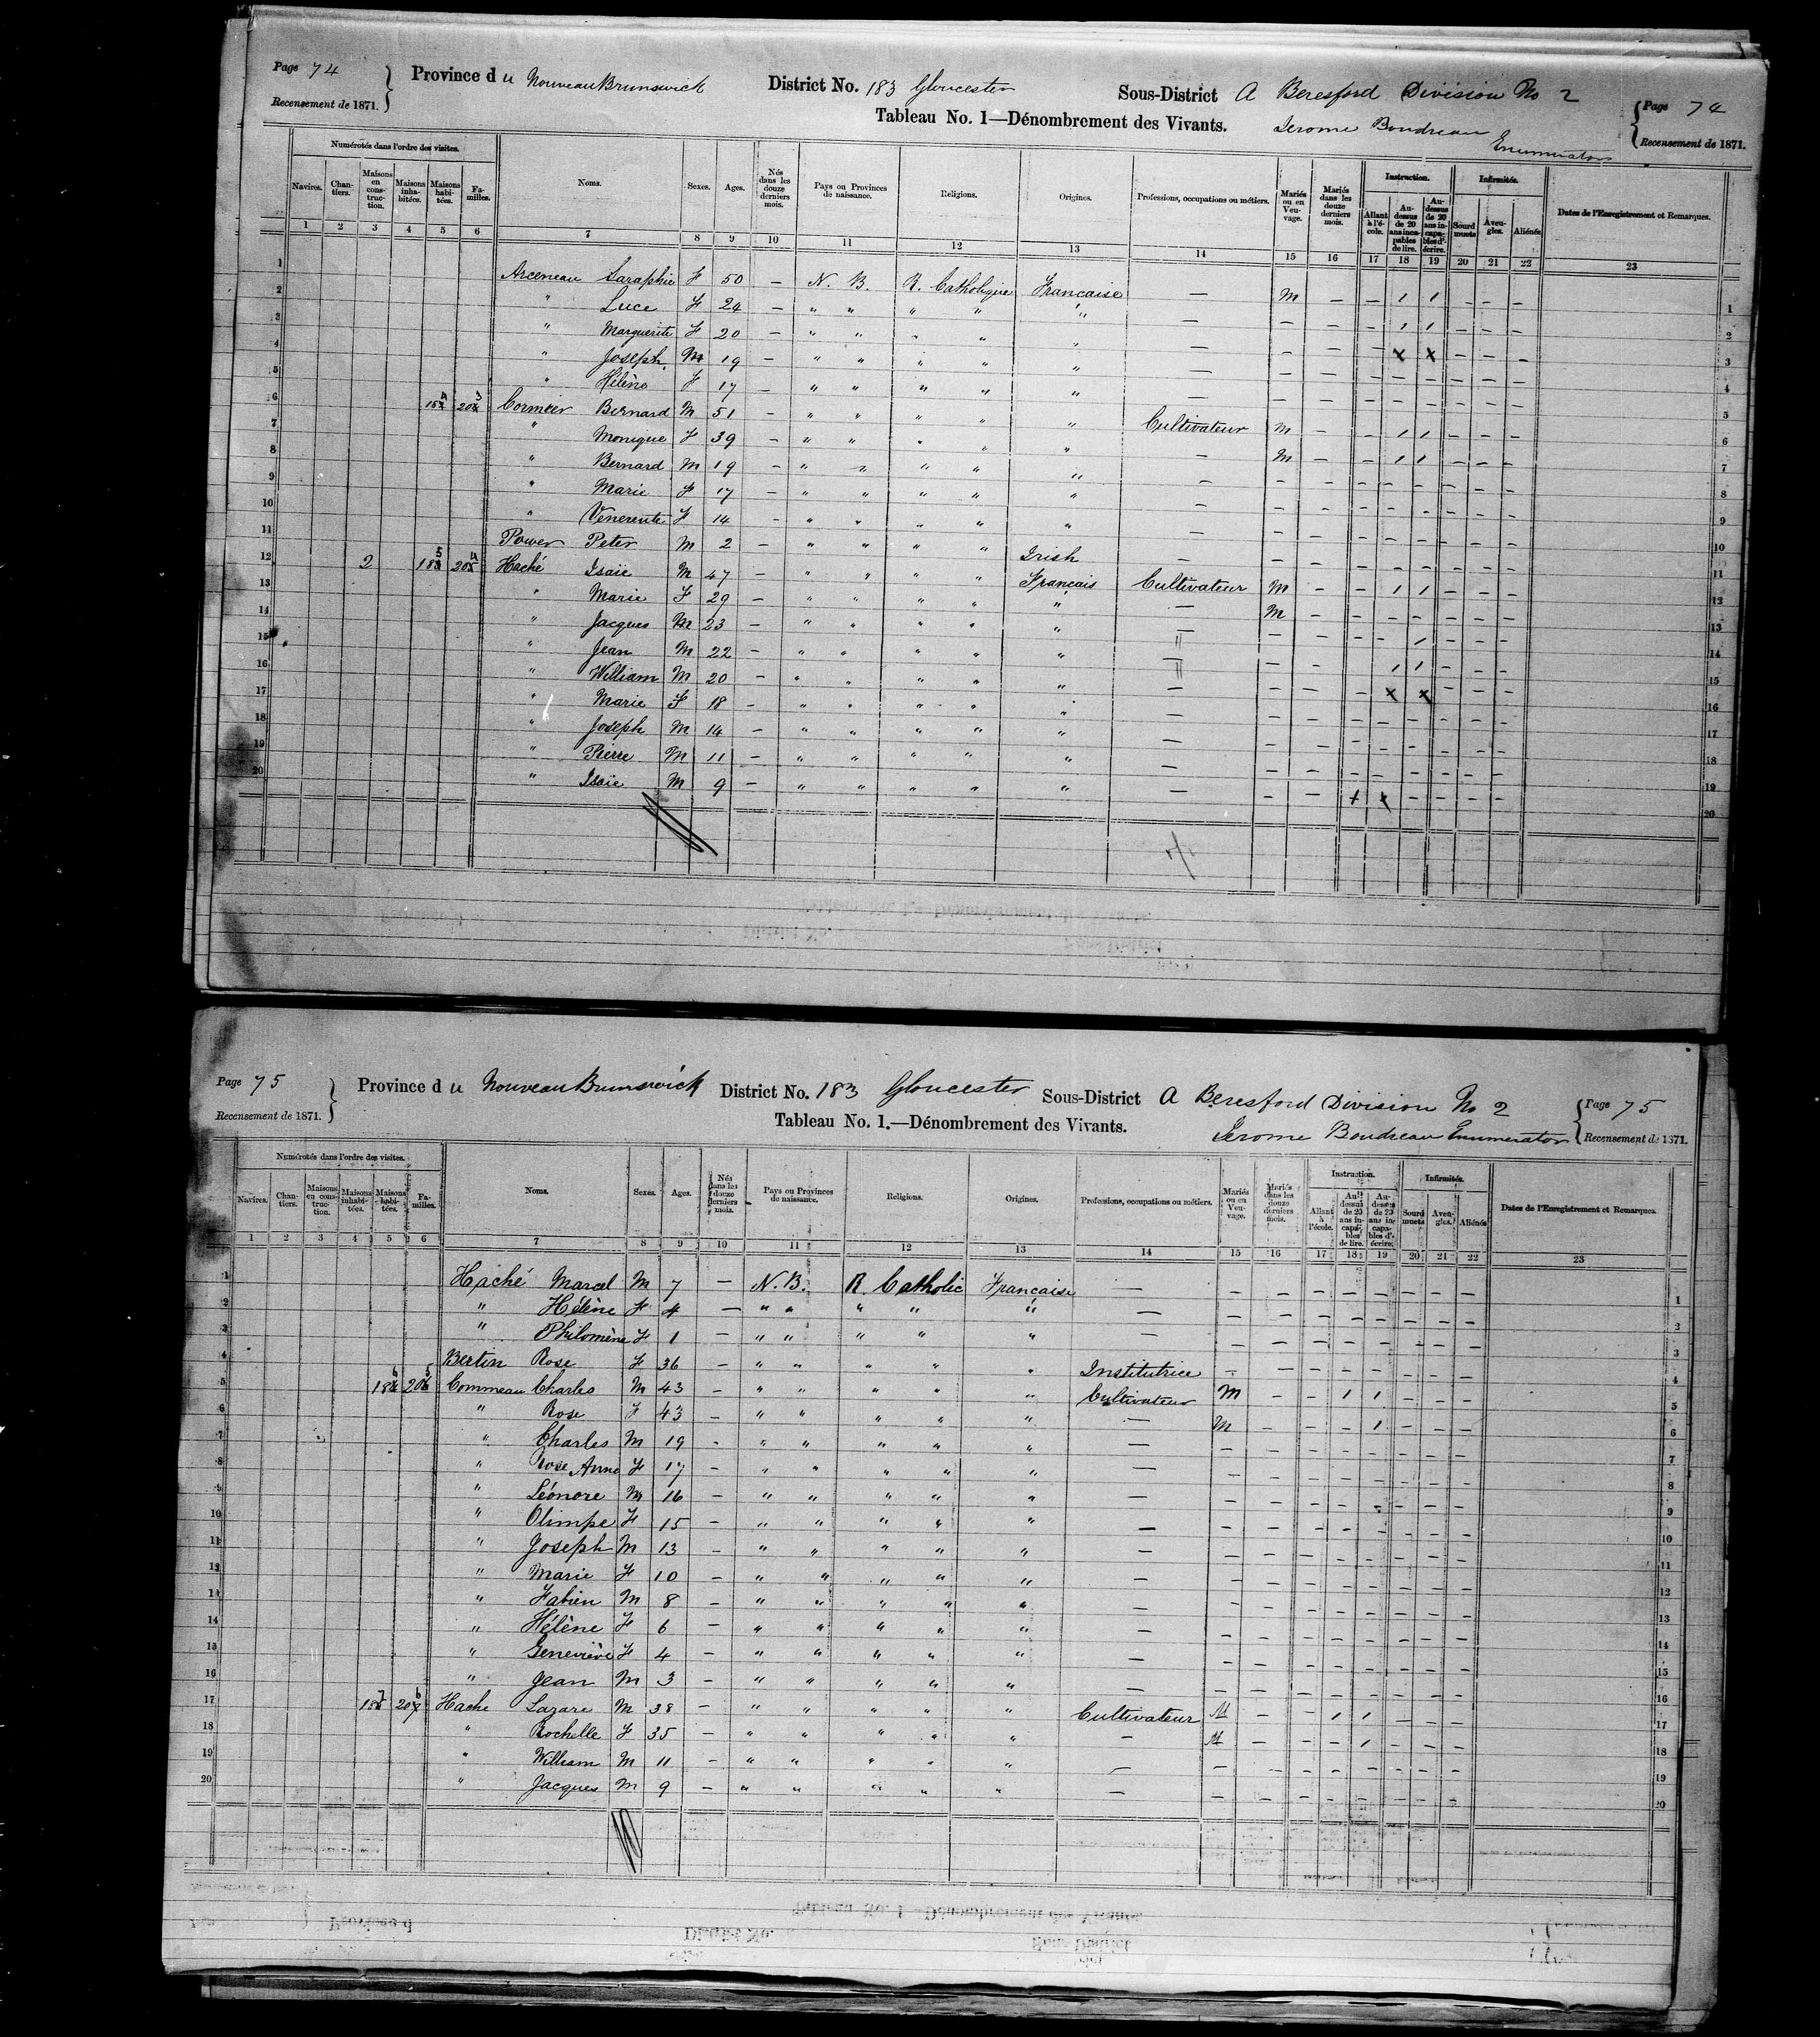 Digitized page of Census of Canada, 1871, Page number 74, for Isaic Haché